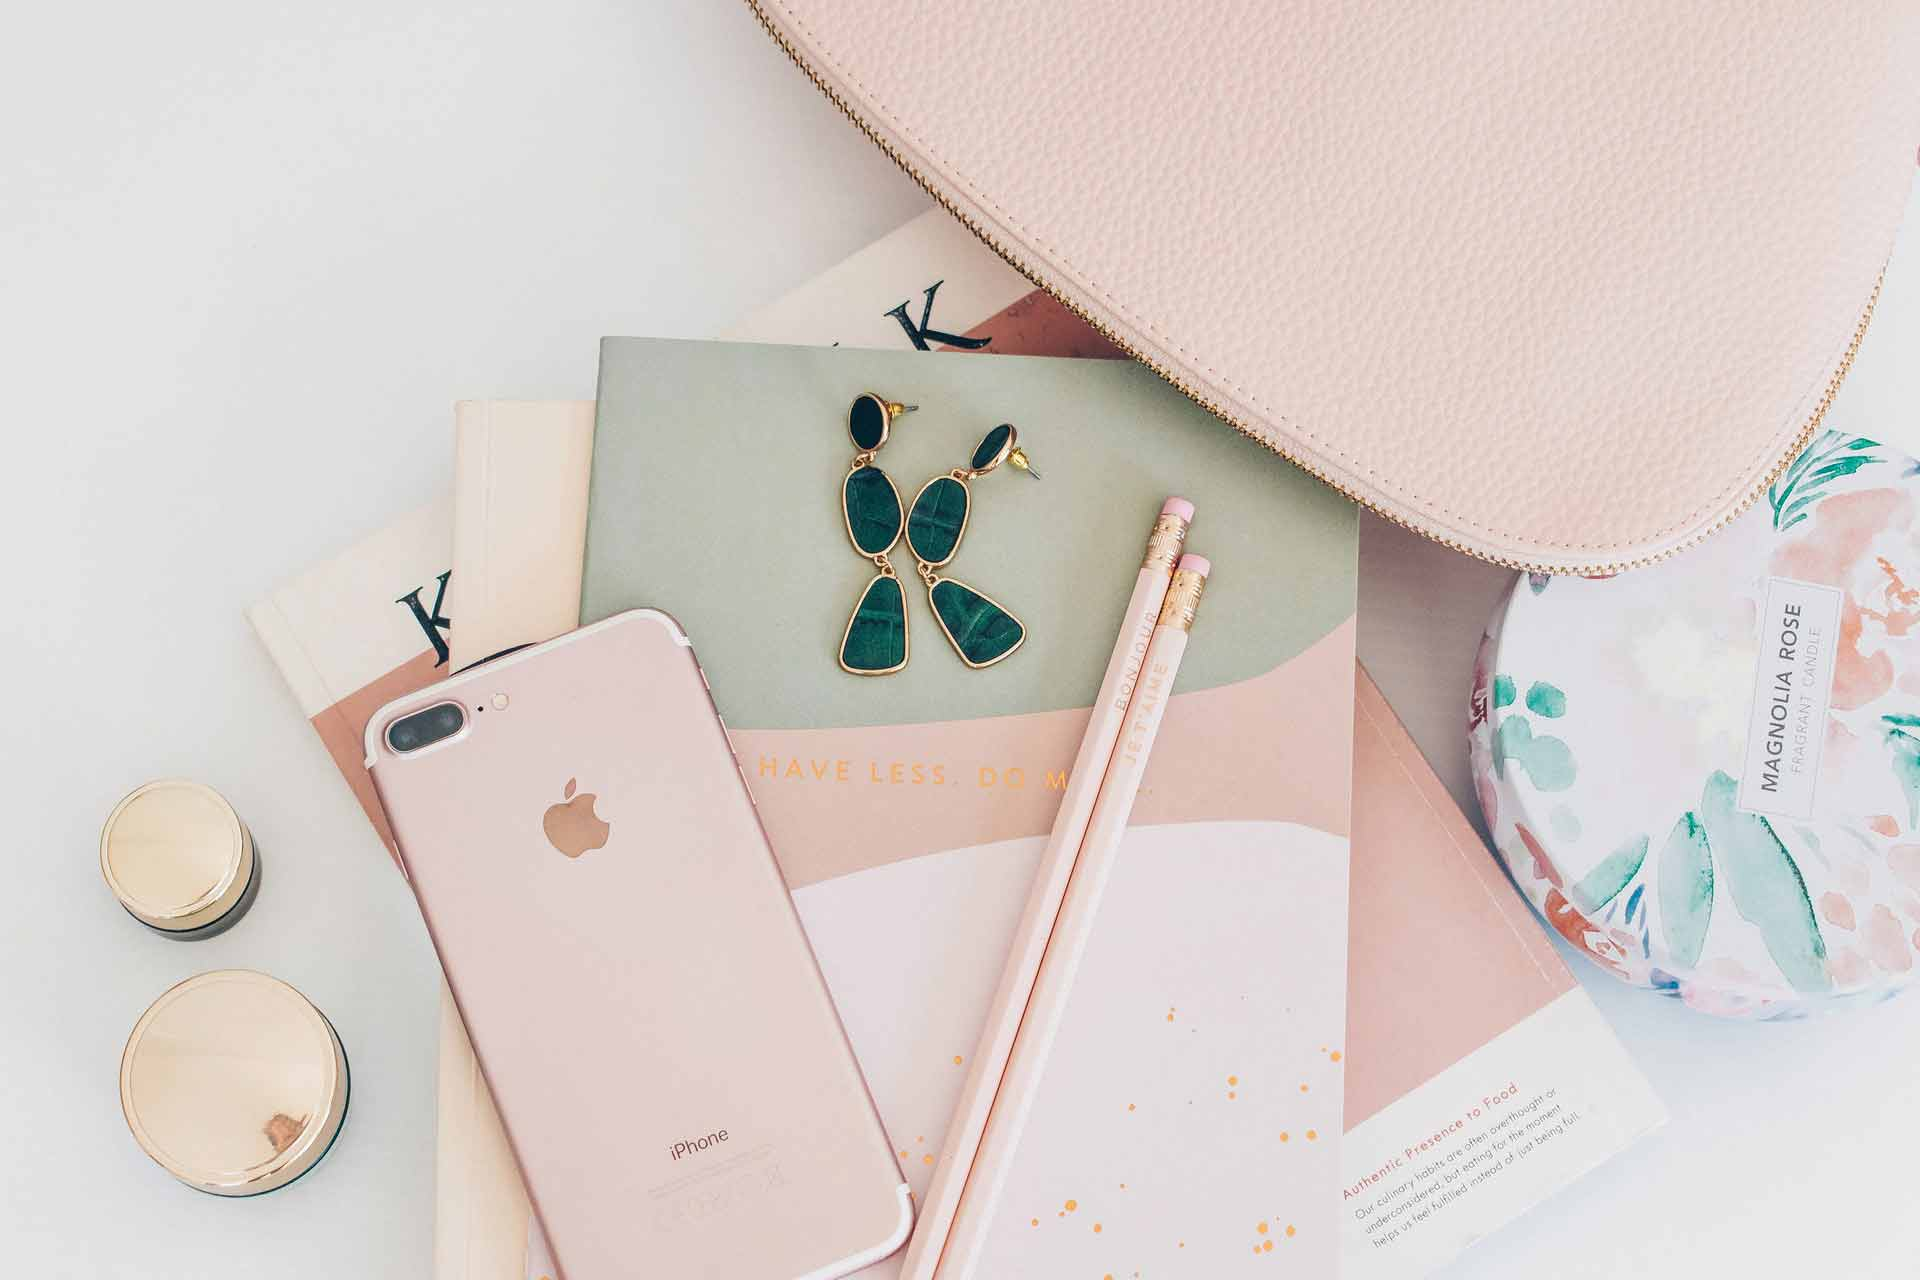 rose-gold-iphone-7-plus-beside-pencils-on-book-2897035